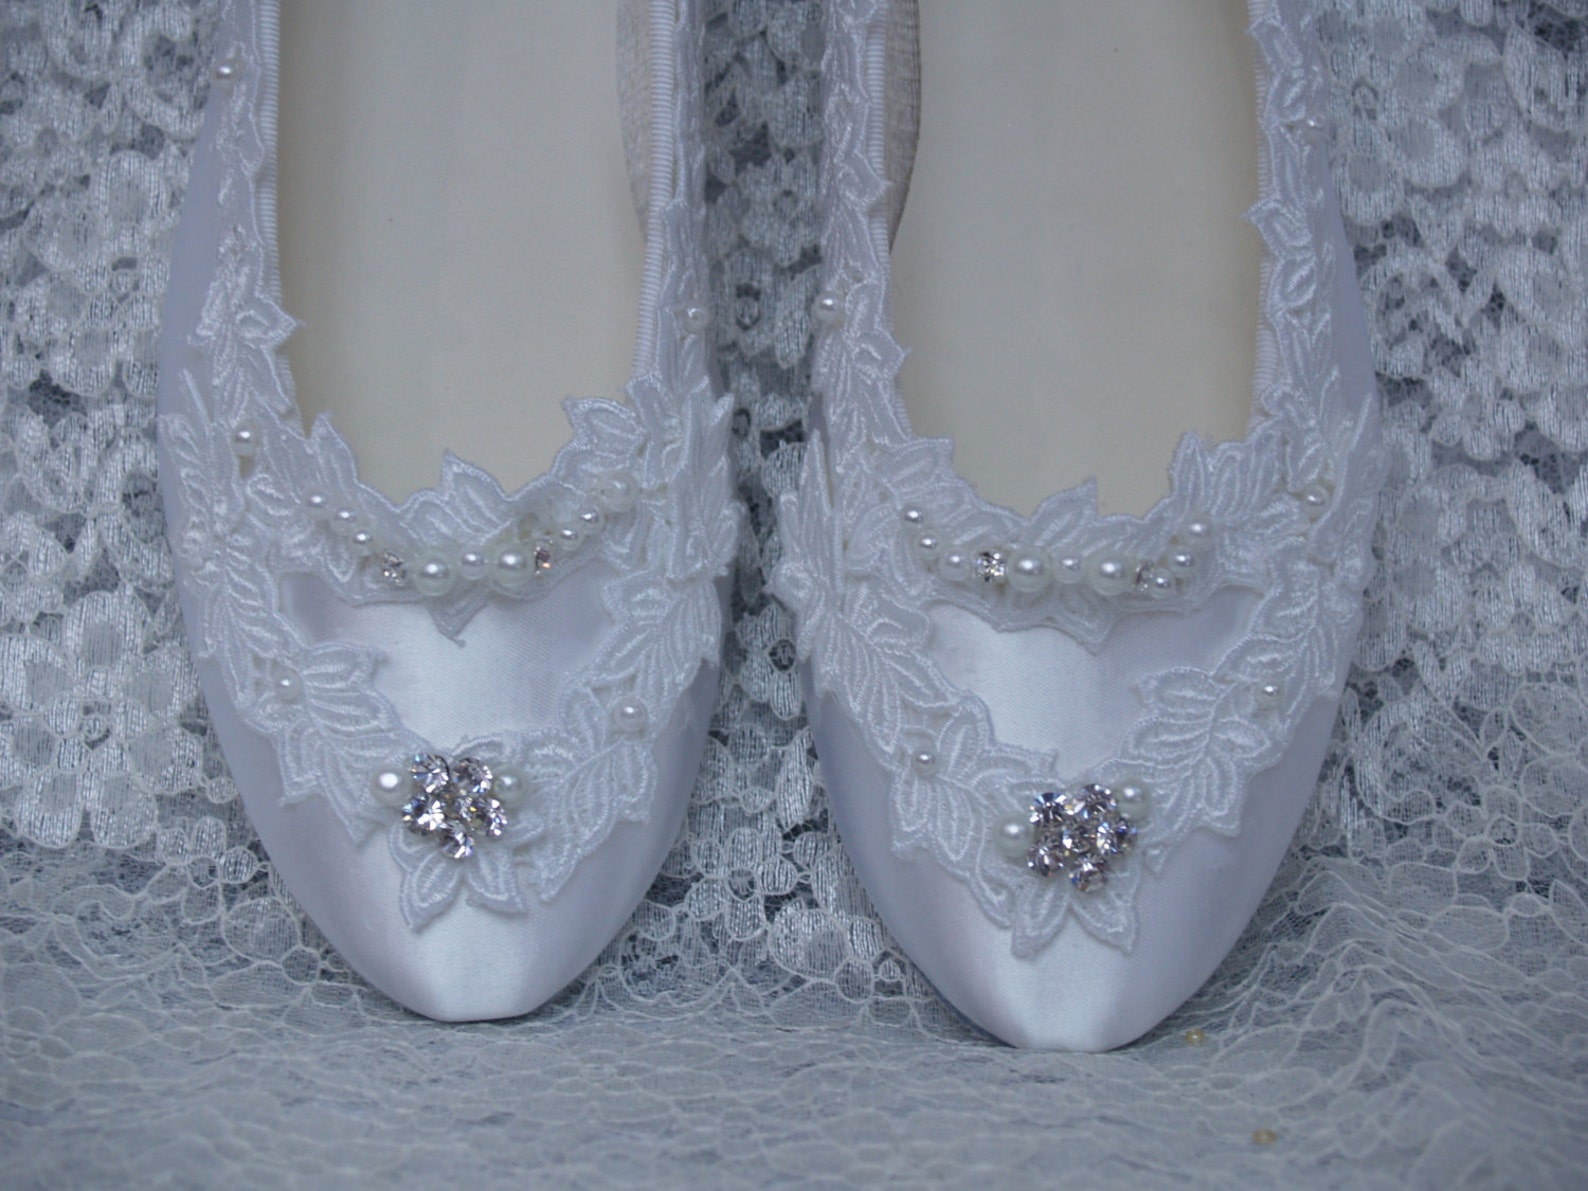 size 8 1/2 wedding flats w american lace pearls & crystals,ballet style flat,leather sole,satin flats, white lace, bling bride,r